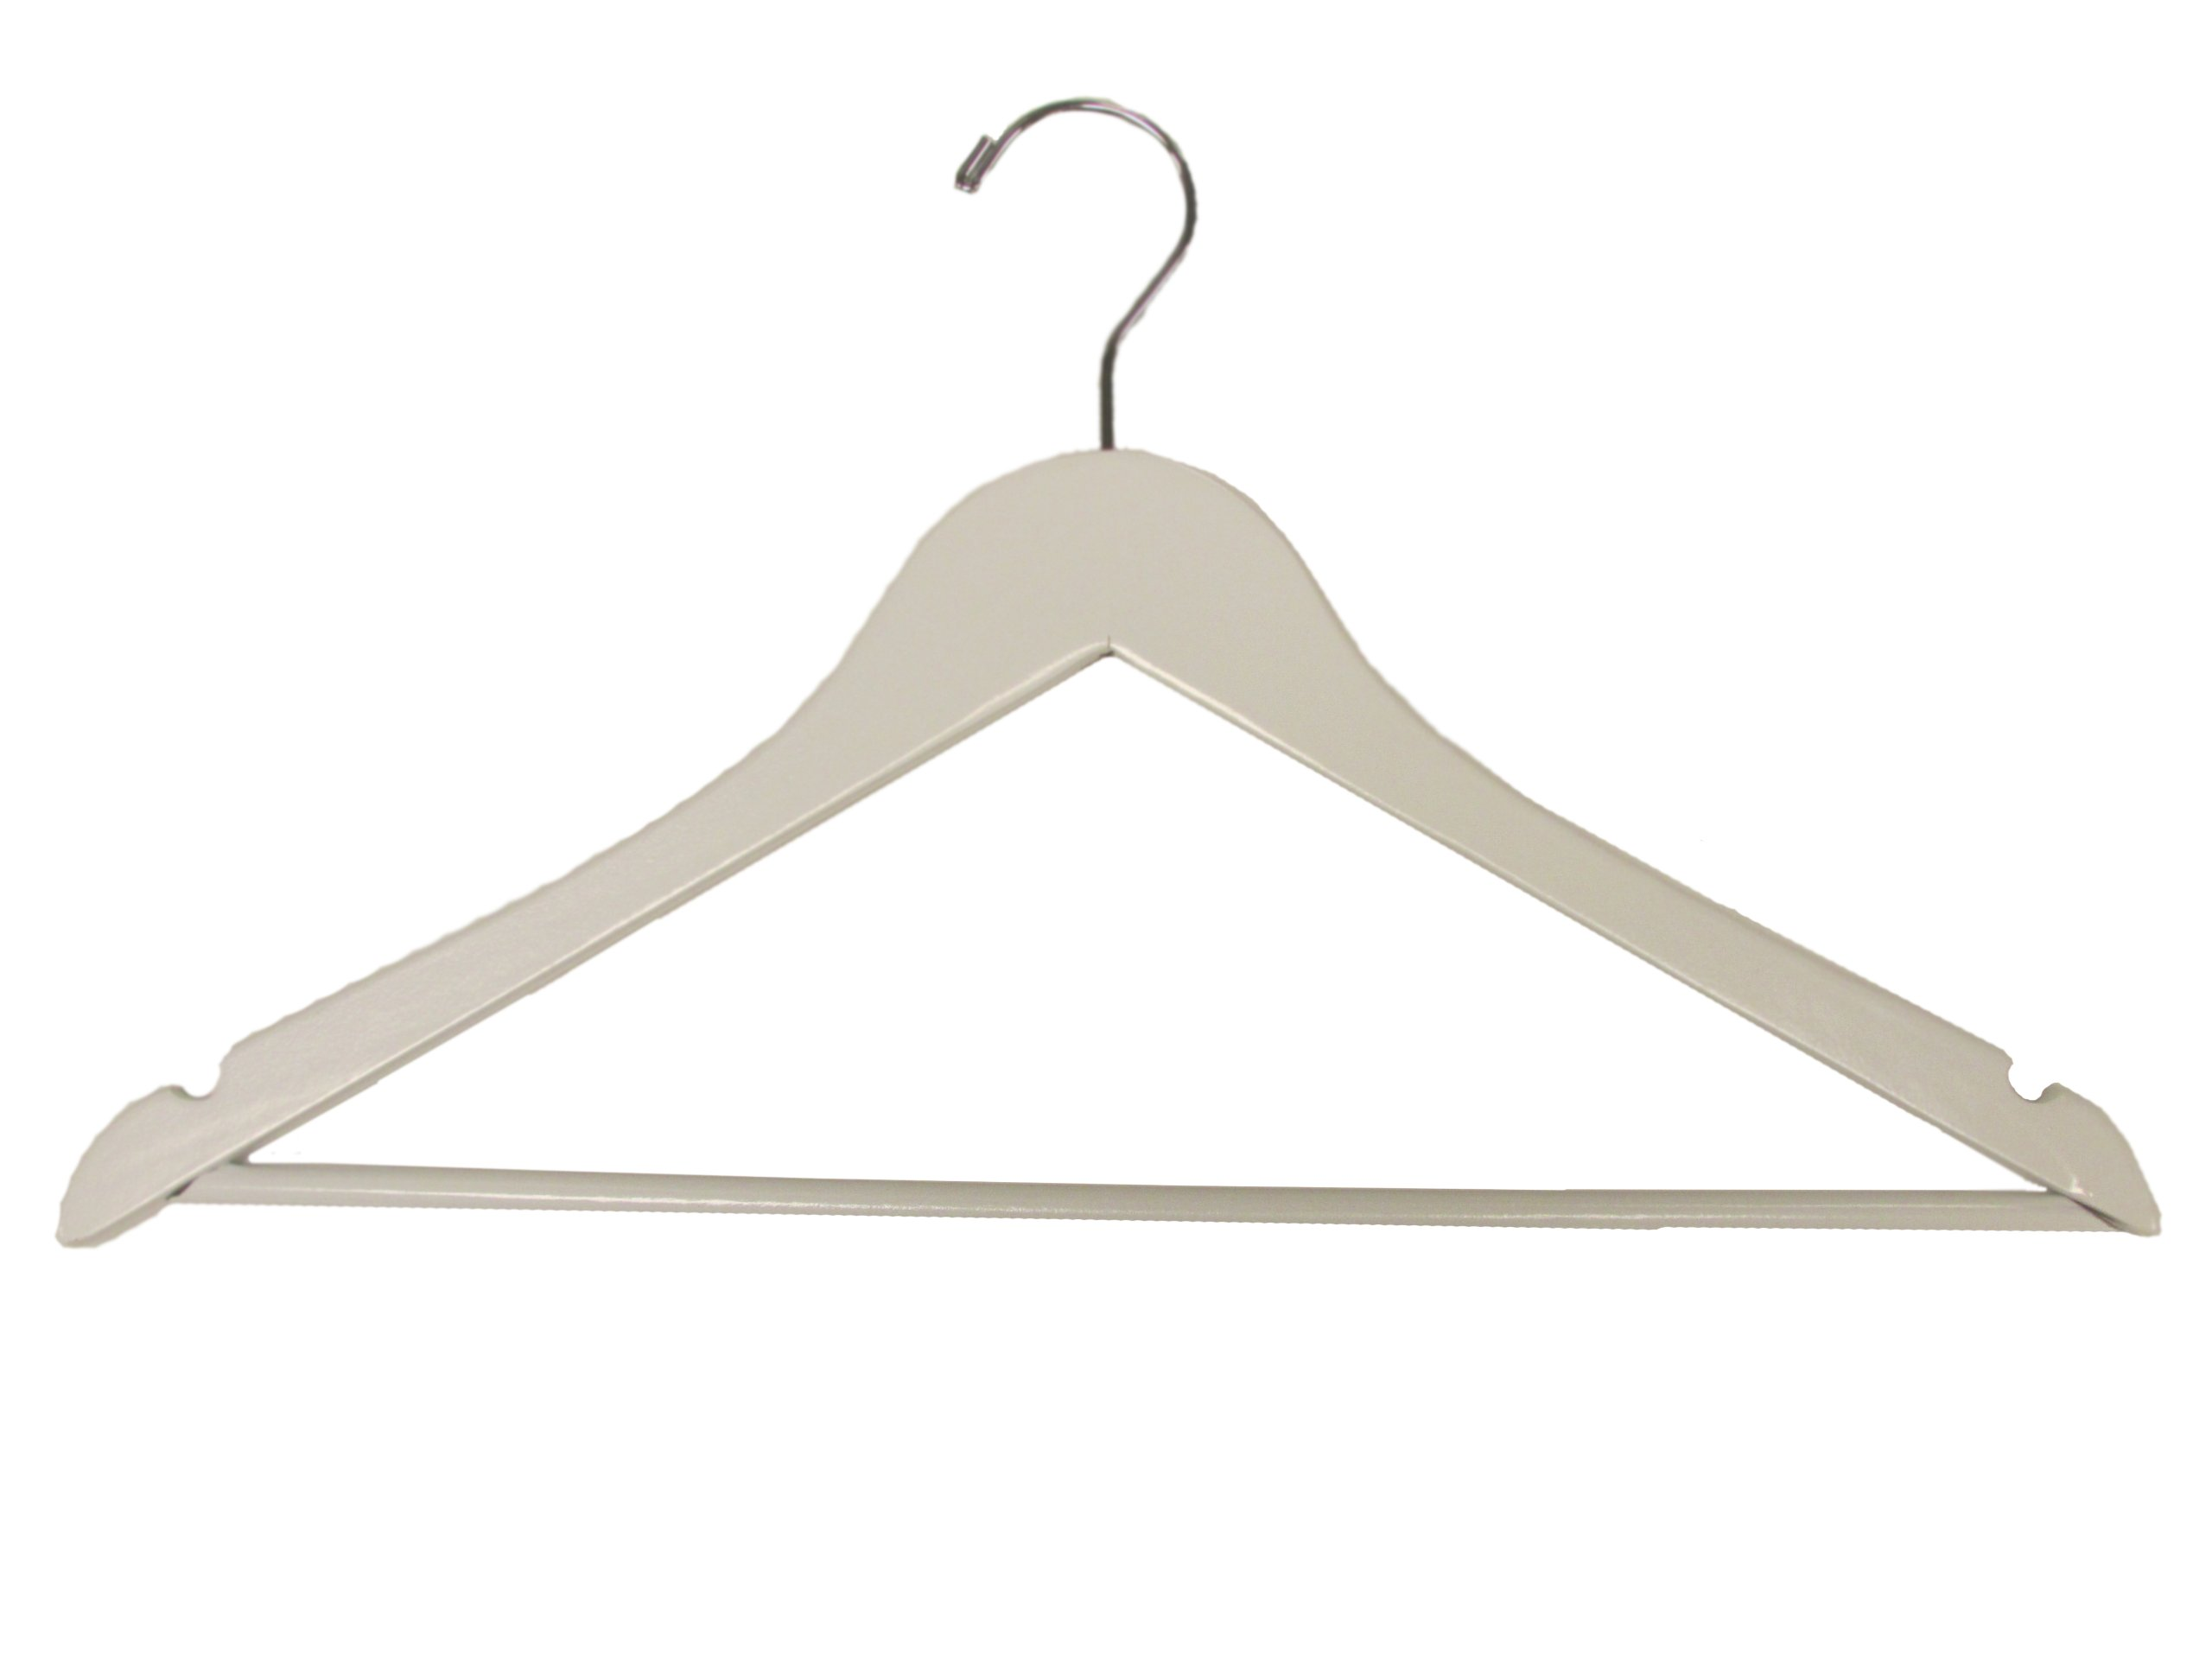 Wooden Suit Hangers White Box of 100